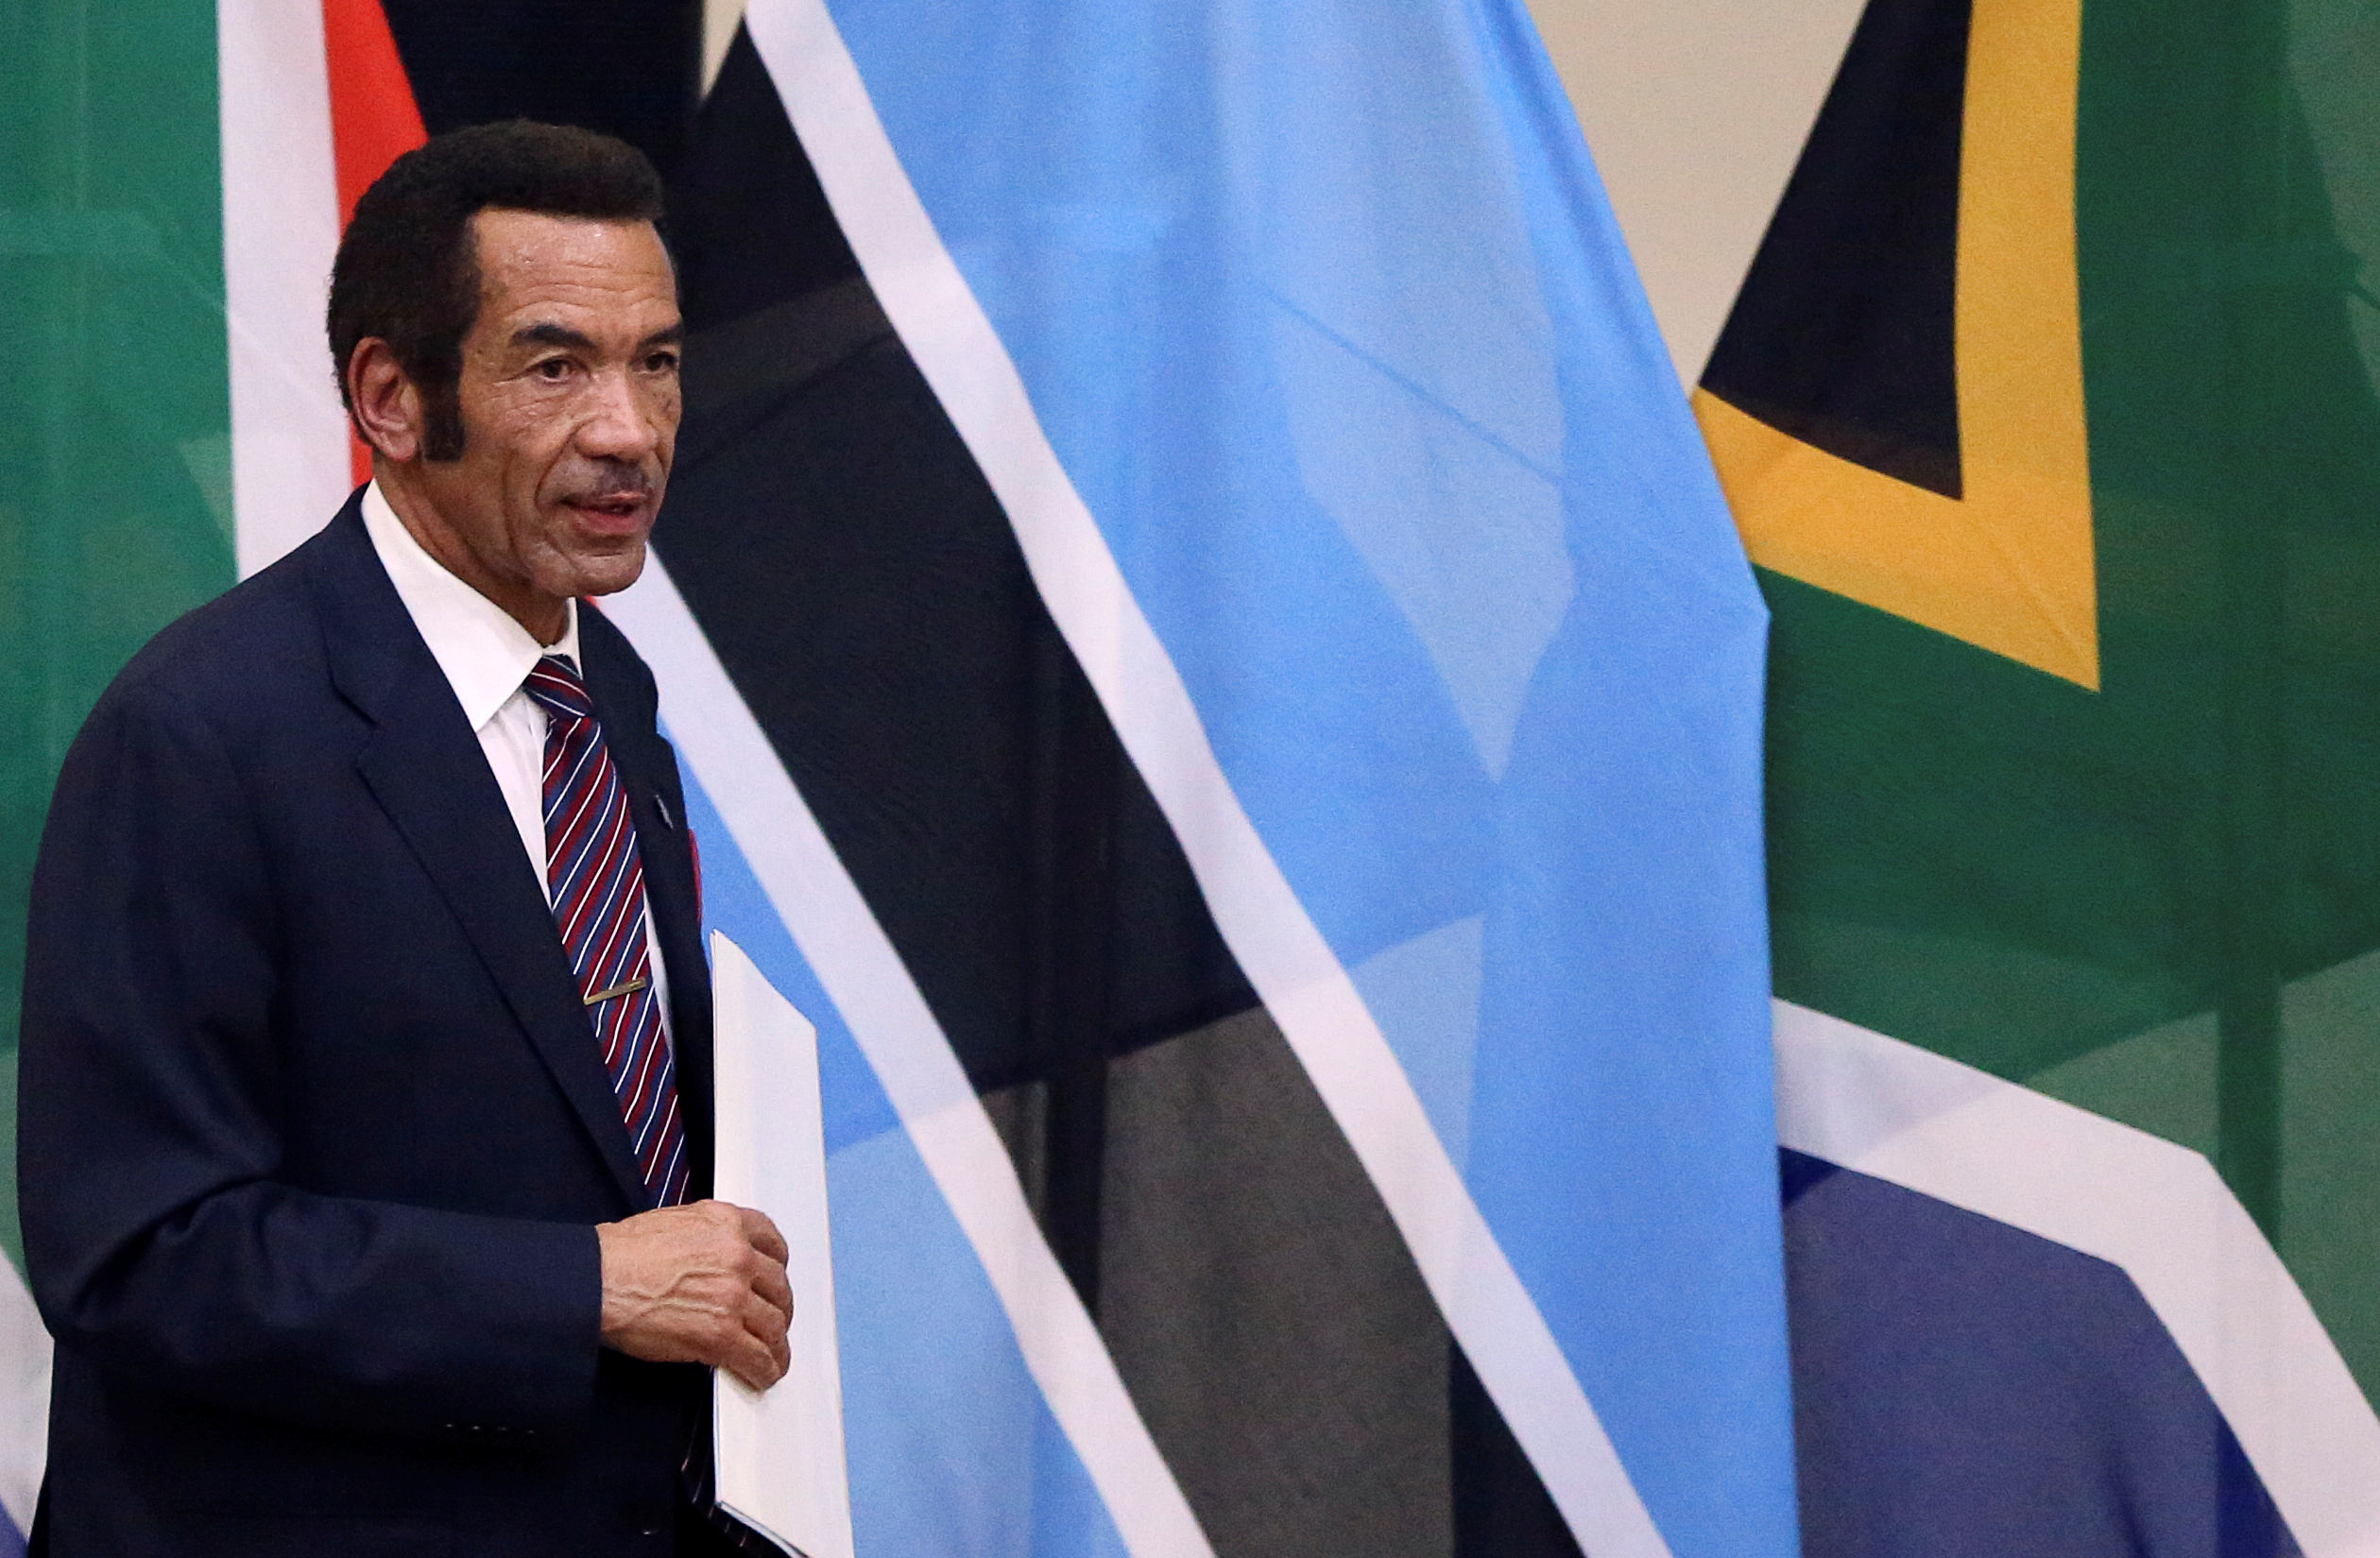 Botswana's President Ian Khama returns to his seat after giving a speech during the Botswana-South Africa Bi-National Commission (BNC) in Pretoria, South Africa, November 11, 2016. REUTERS/Siphiwe Sibeko - RTX2T66K